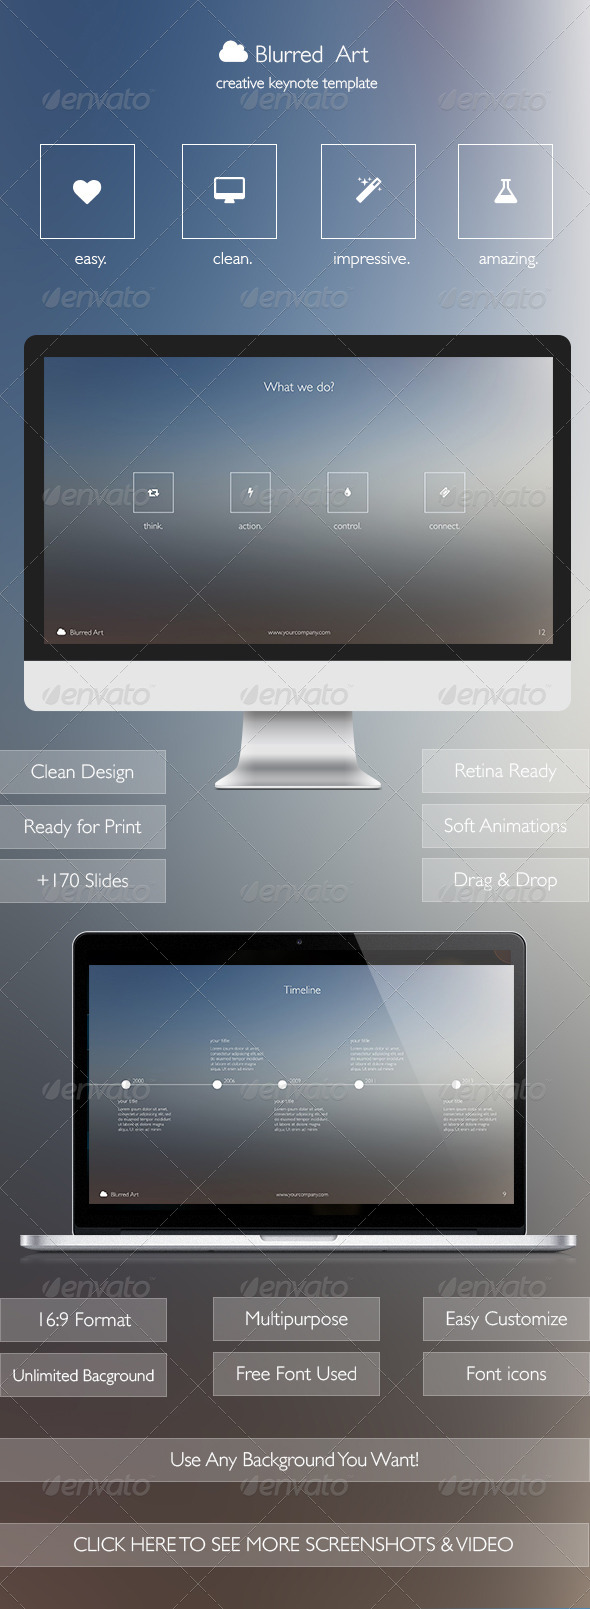 GraphicRiver Blurred Art Creative Keynote Template 7244892